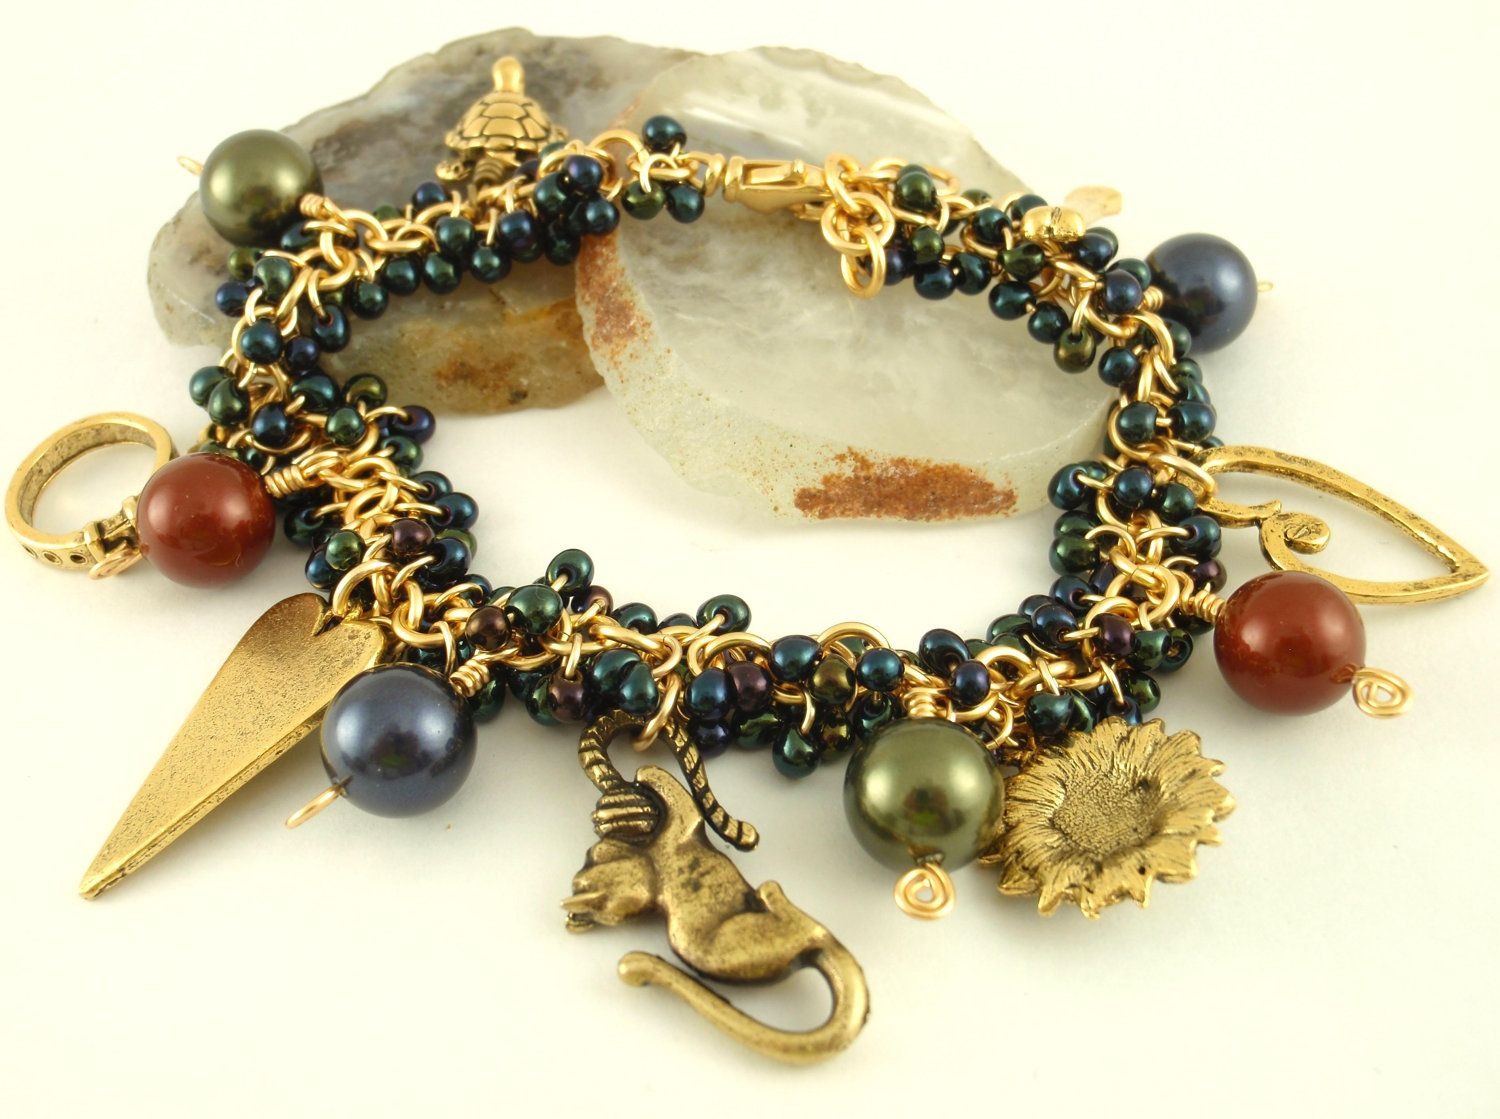 Charmed Shaggy Beaded Bracelet